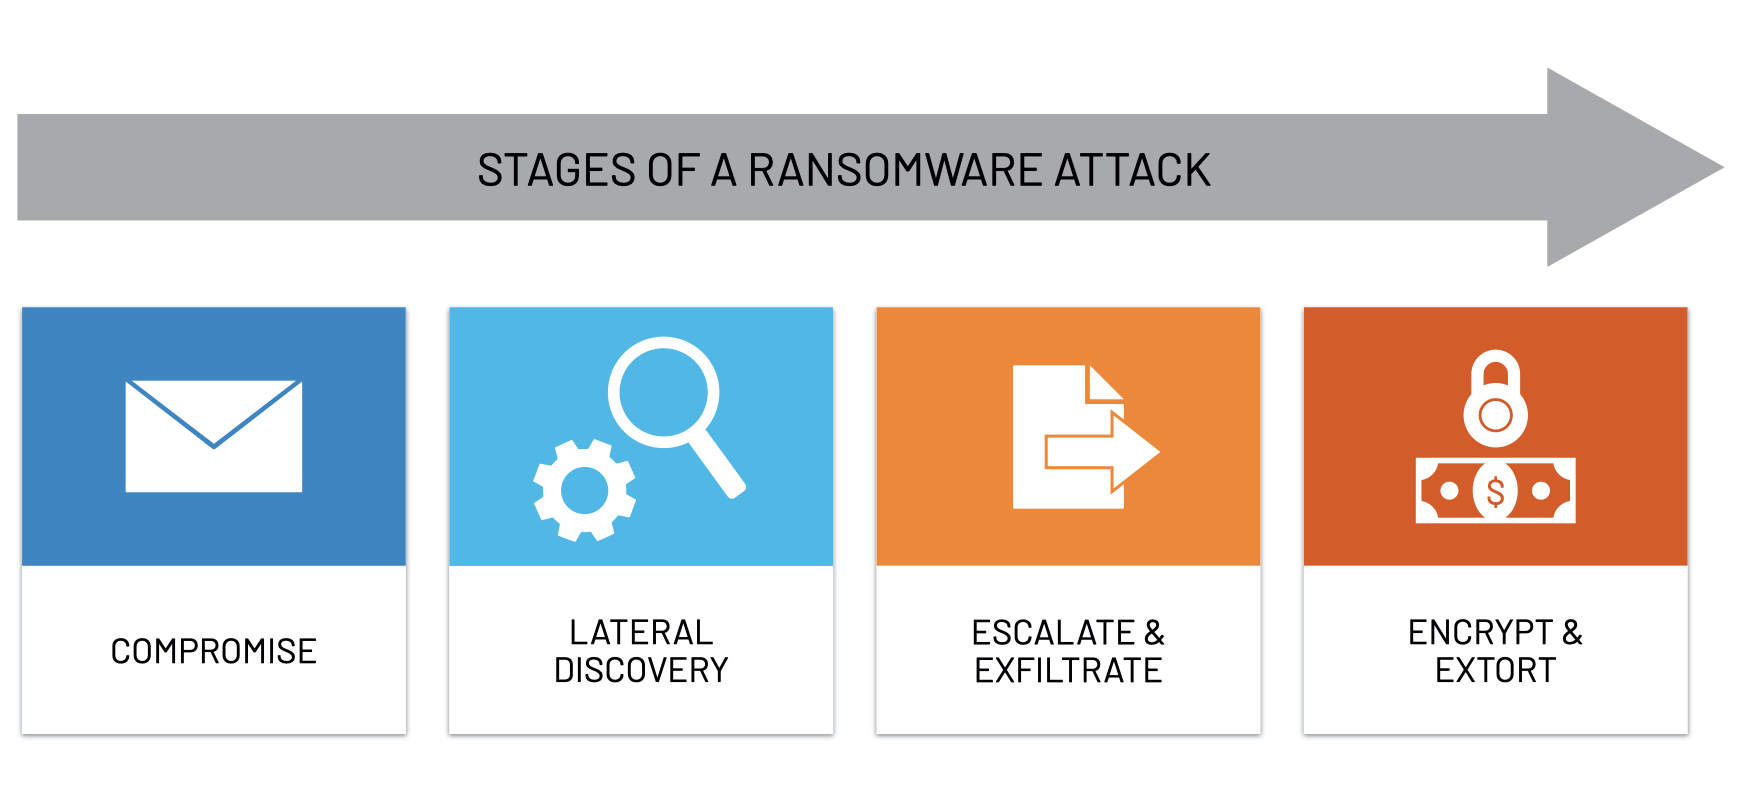 The different stages of Ransomware attack